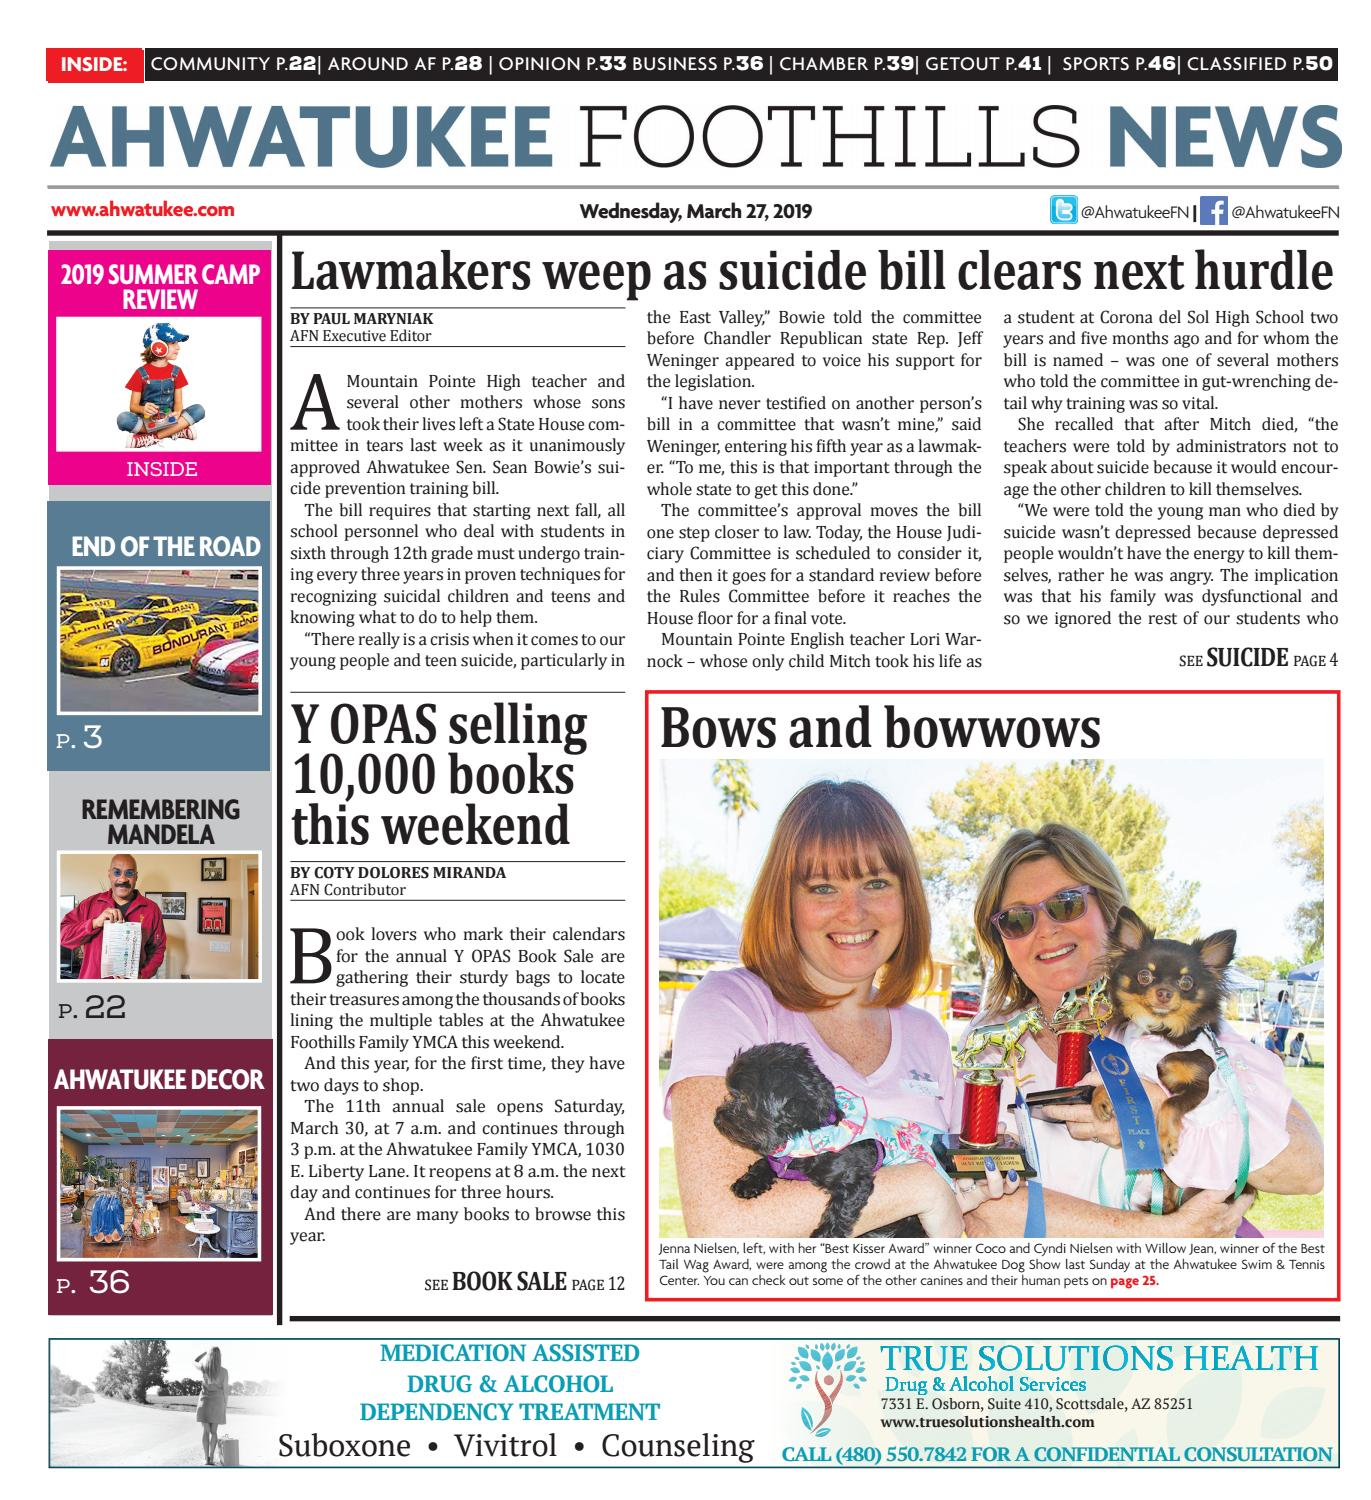 Ahwatukee Foothills News - March 27, 2019 by Times Media